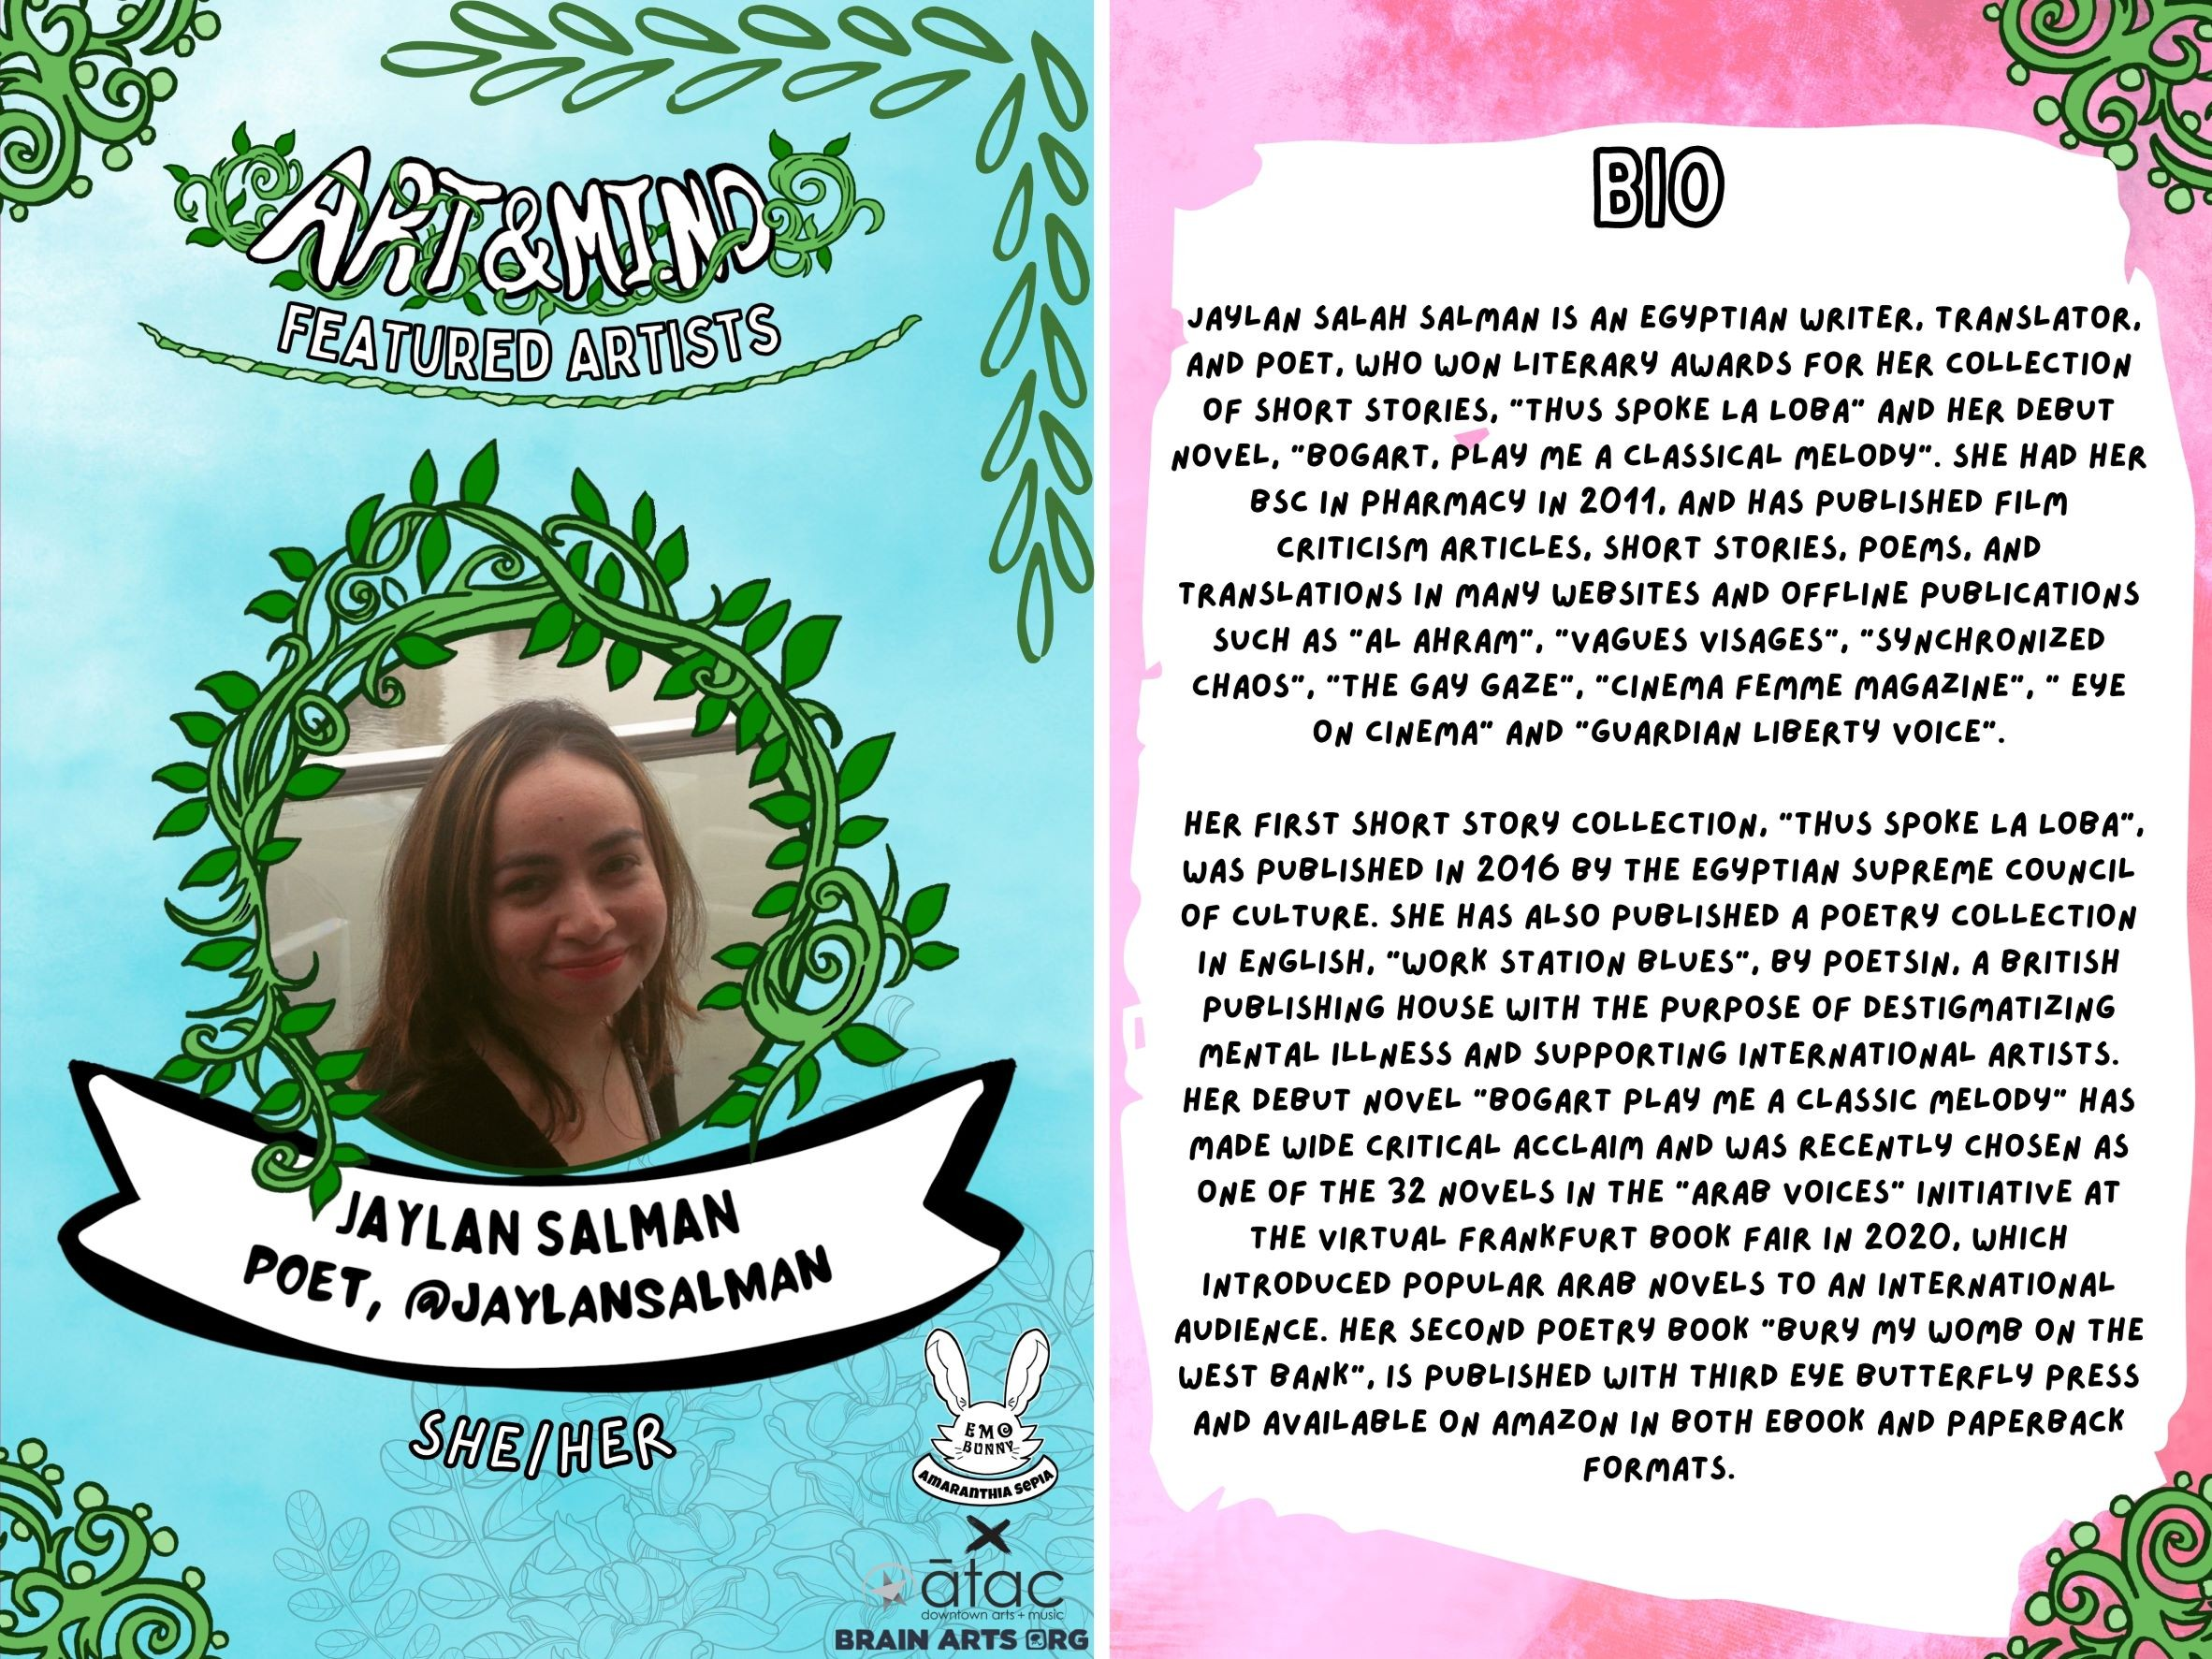 Featured Artist:  Jaylan Salah Salman is an Egyptian writer, translator, and poet, who won literary awards for her collection of short stories,